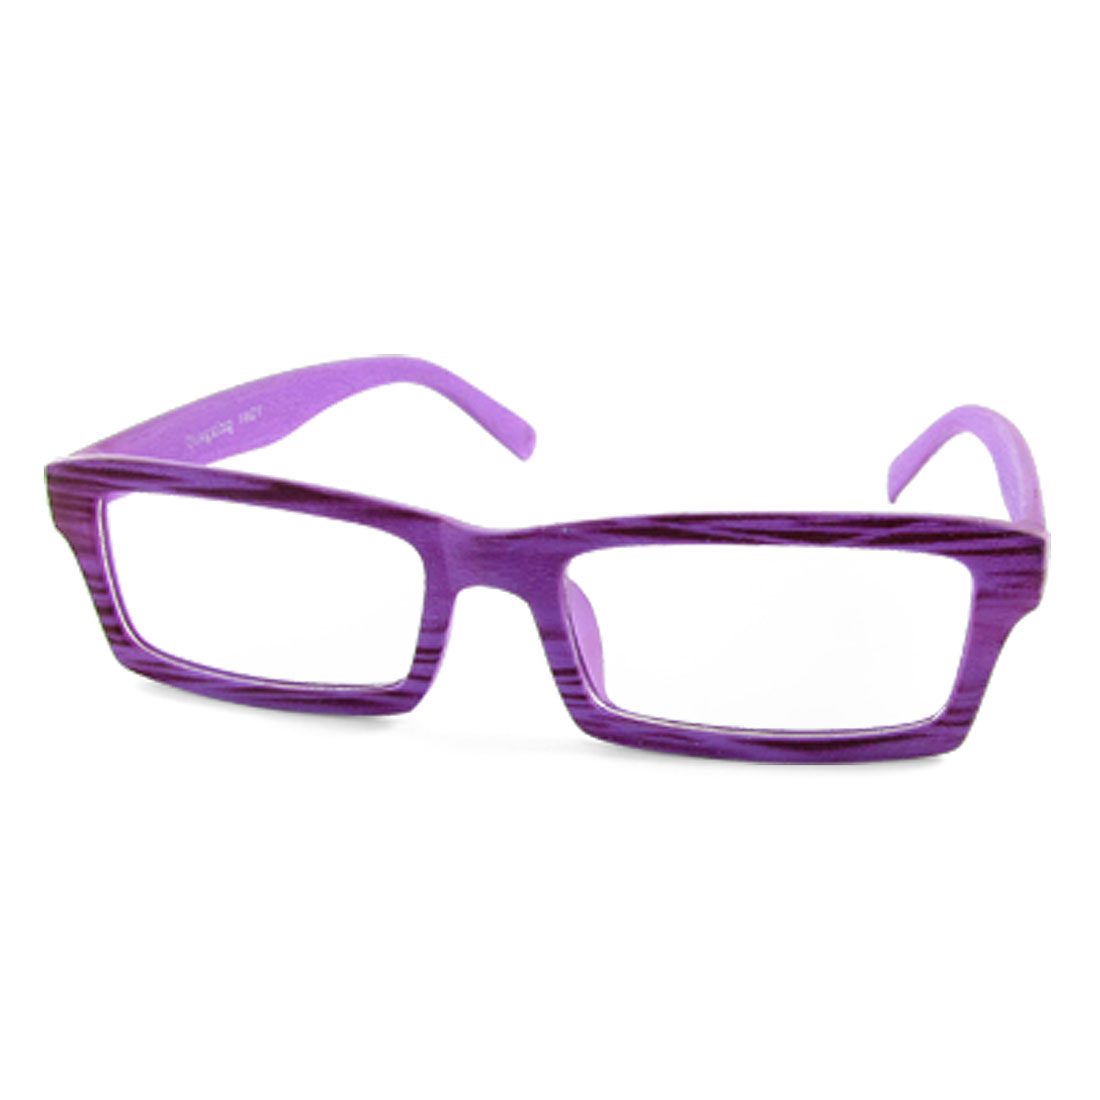 1021 Purple Wood Grain Full Rim Plain Glasses Rectangle Lens Spectacles